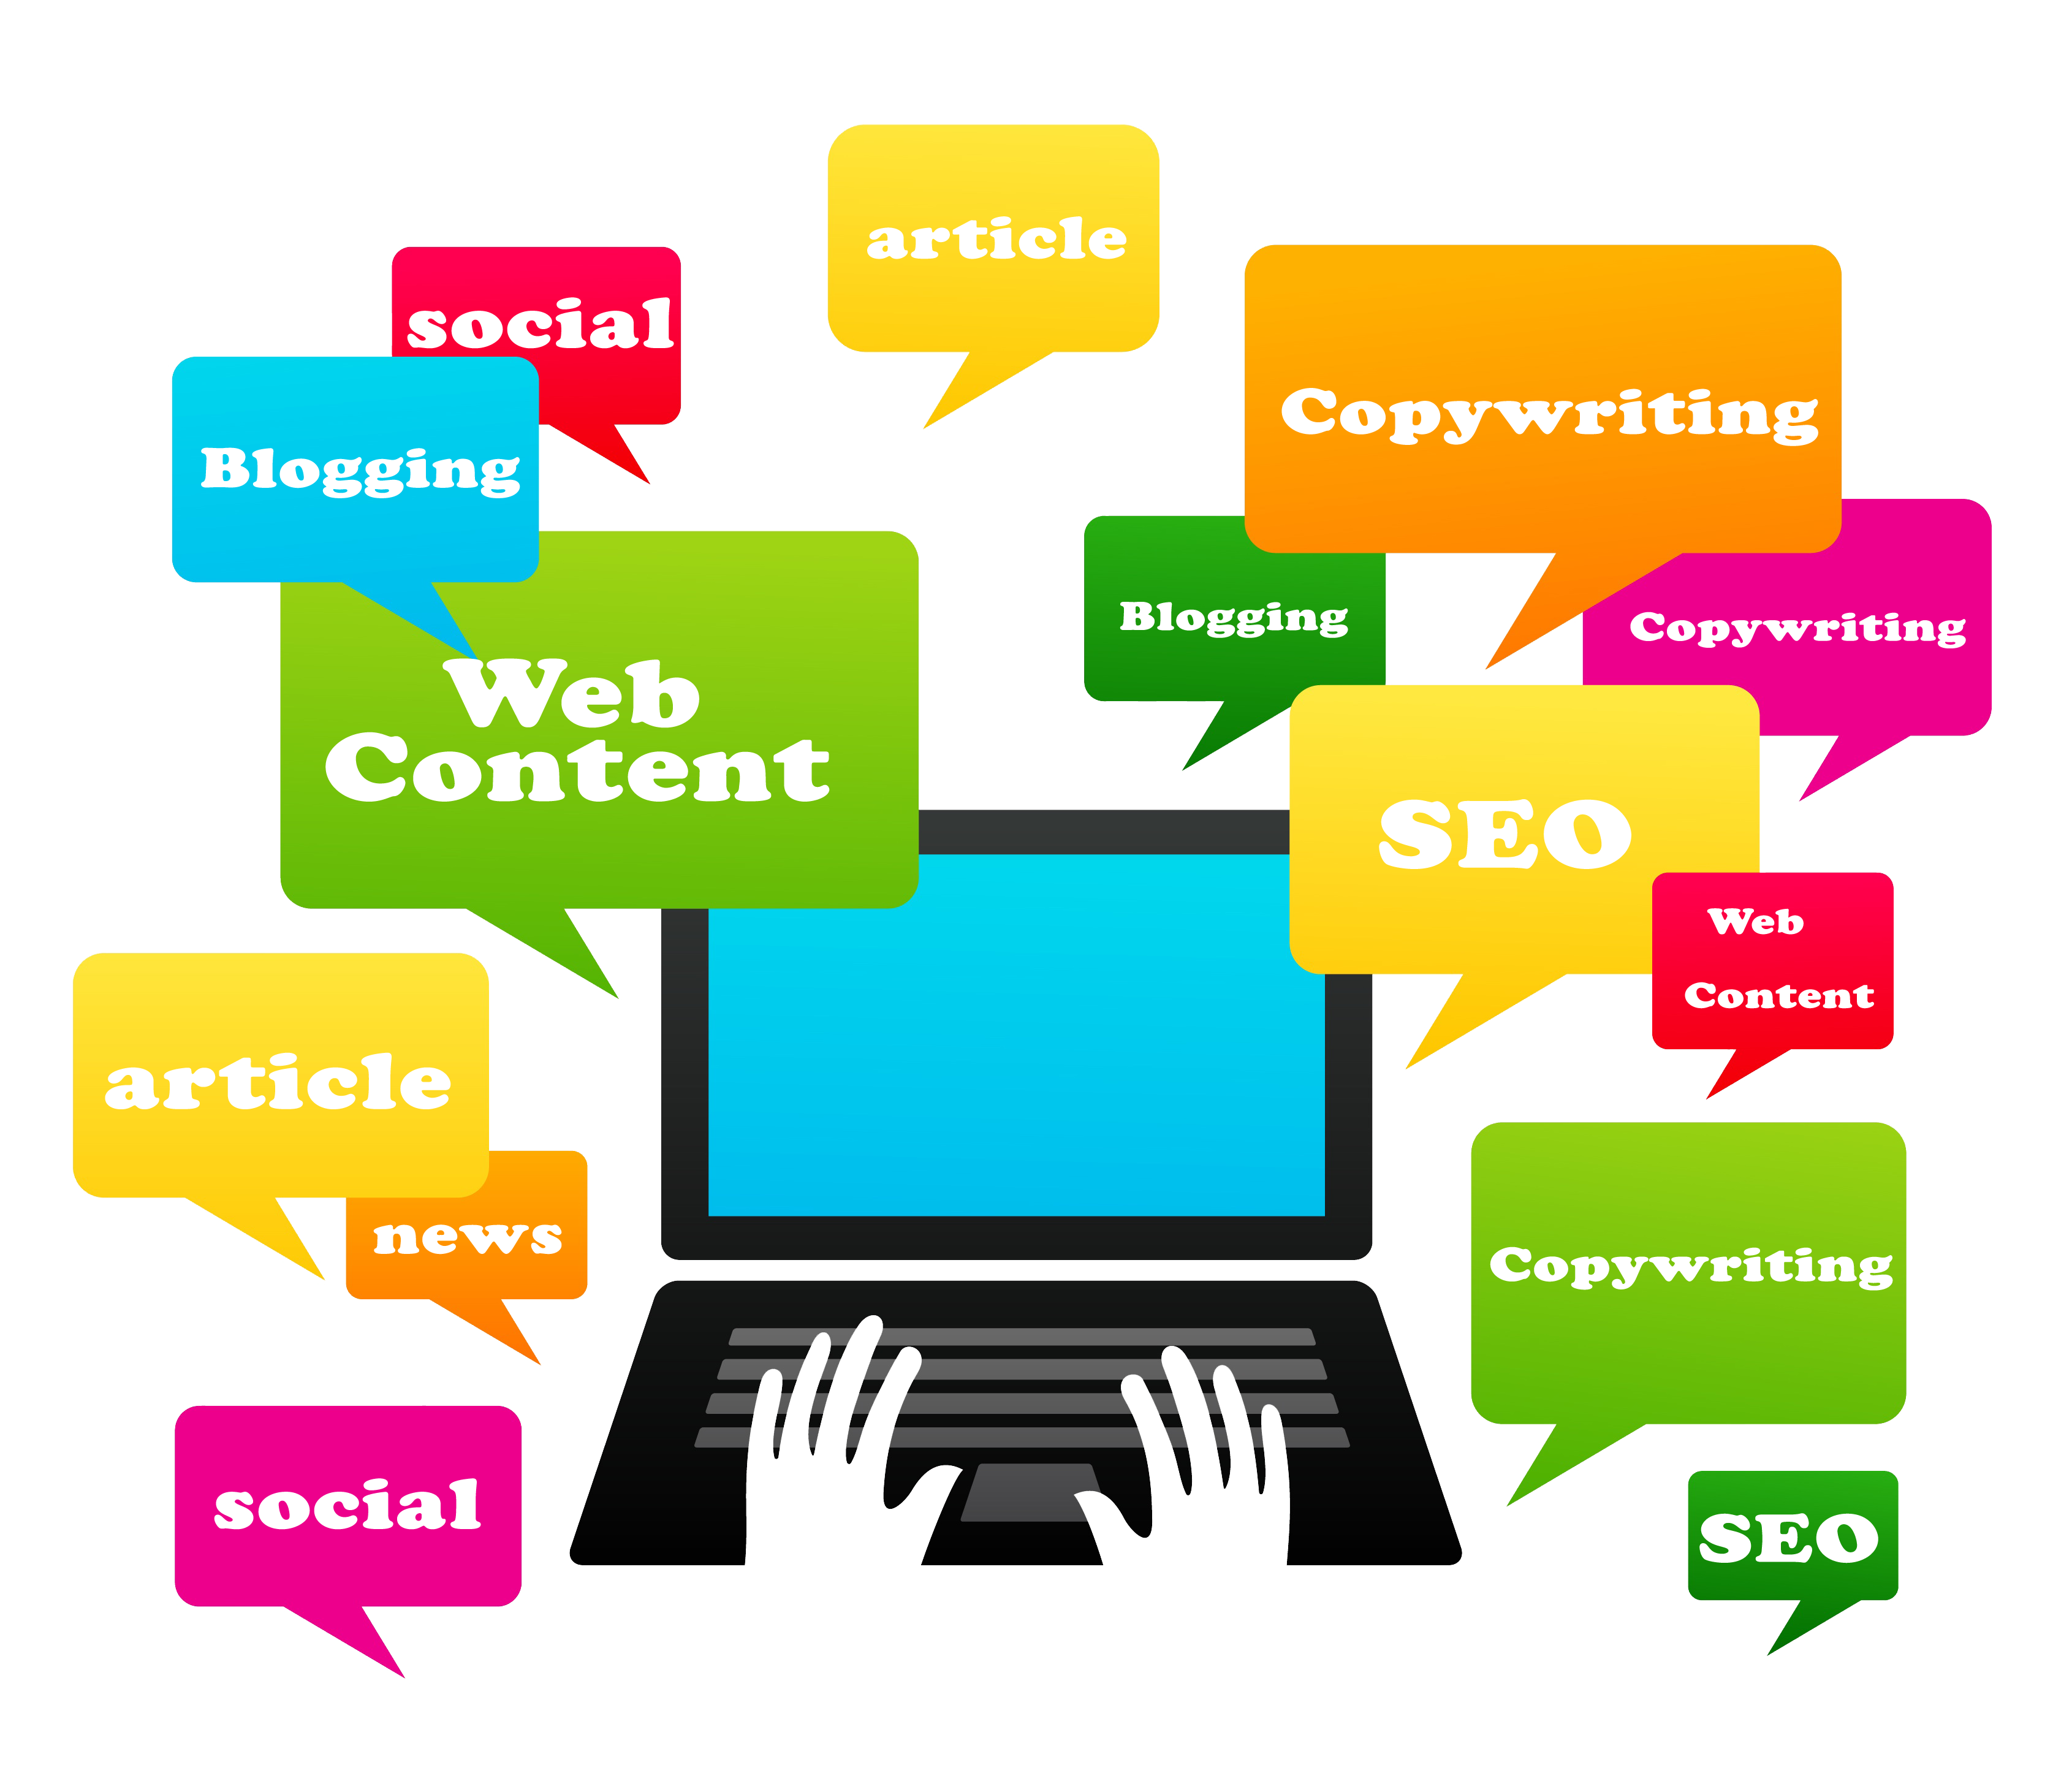 Marketing transparent blog content. Article writing in english